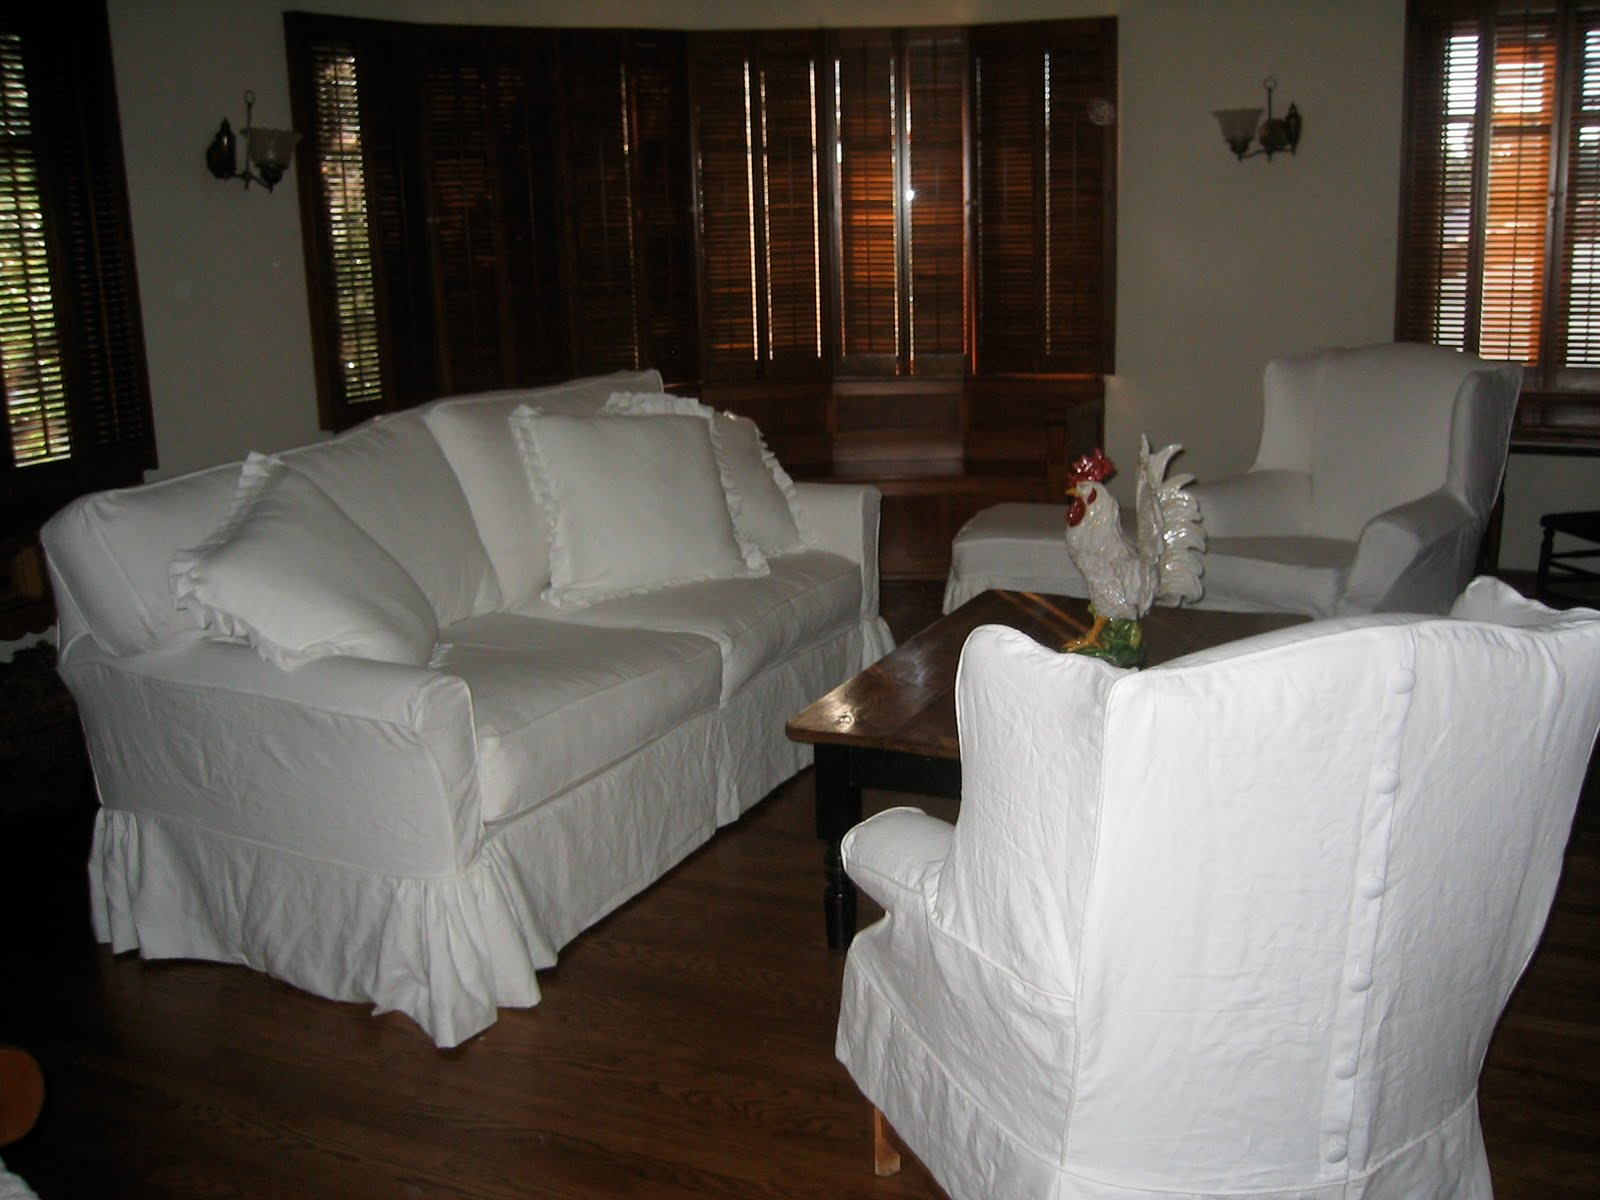 slipcover pin easy brazil and comfy washed linens slipcovers make to linen